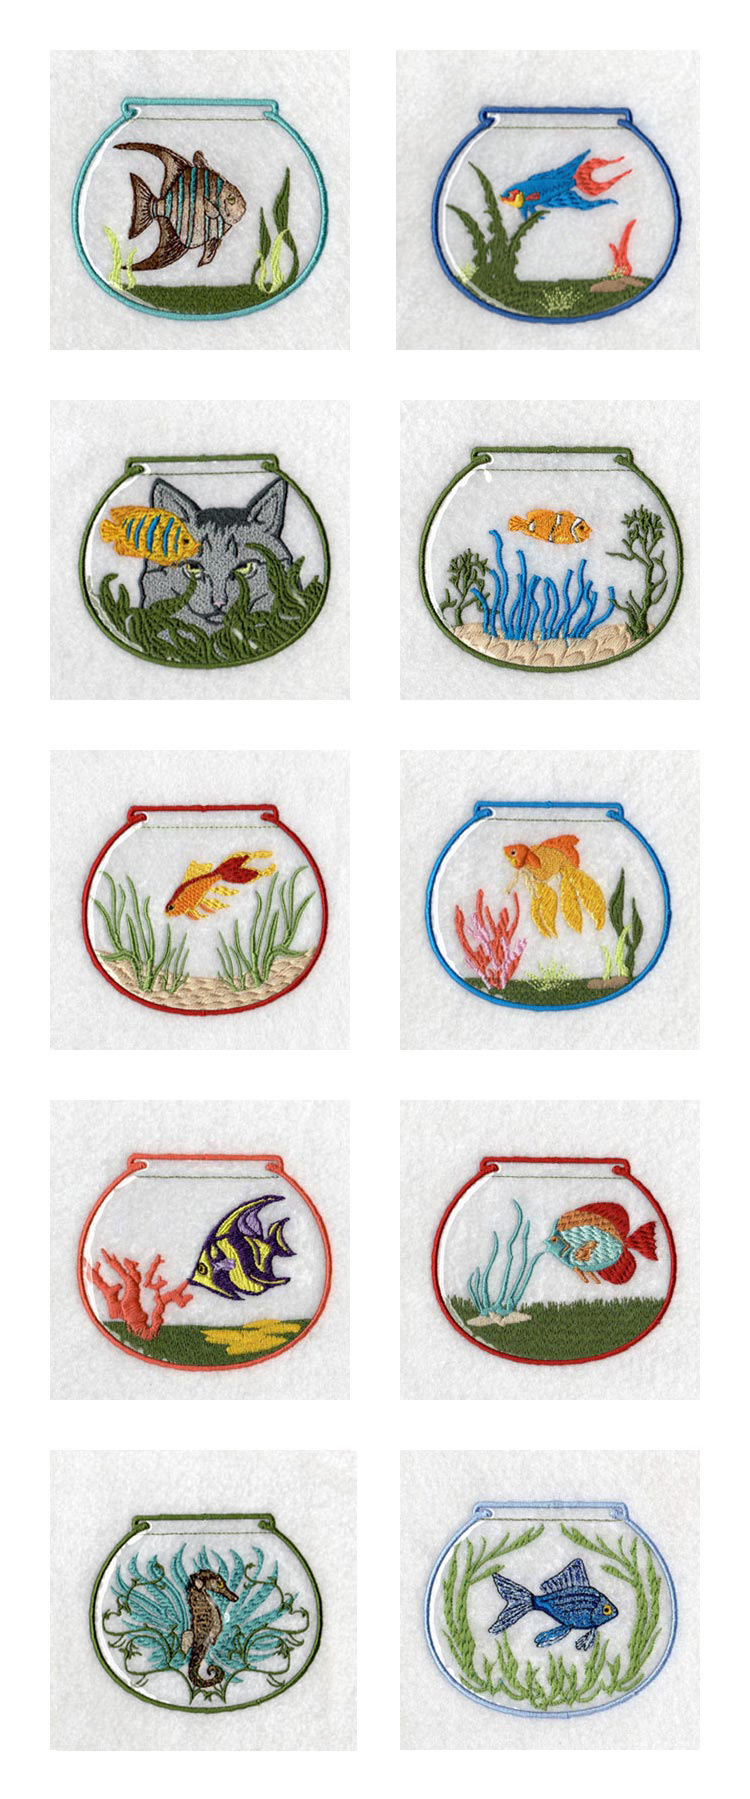 Machine embroidery designs vinyl covered fish bowls set